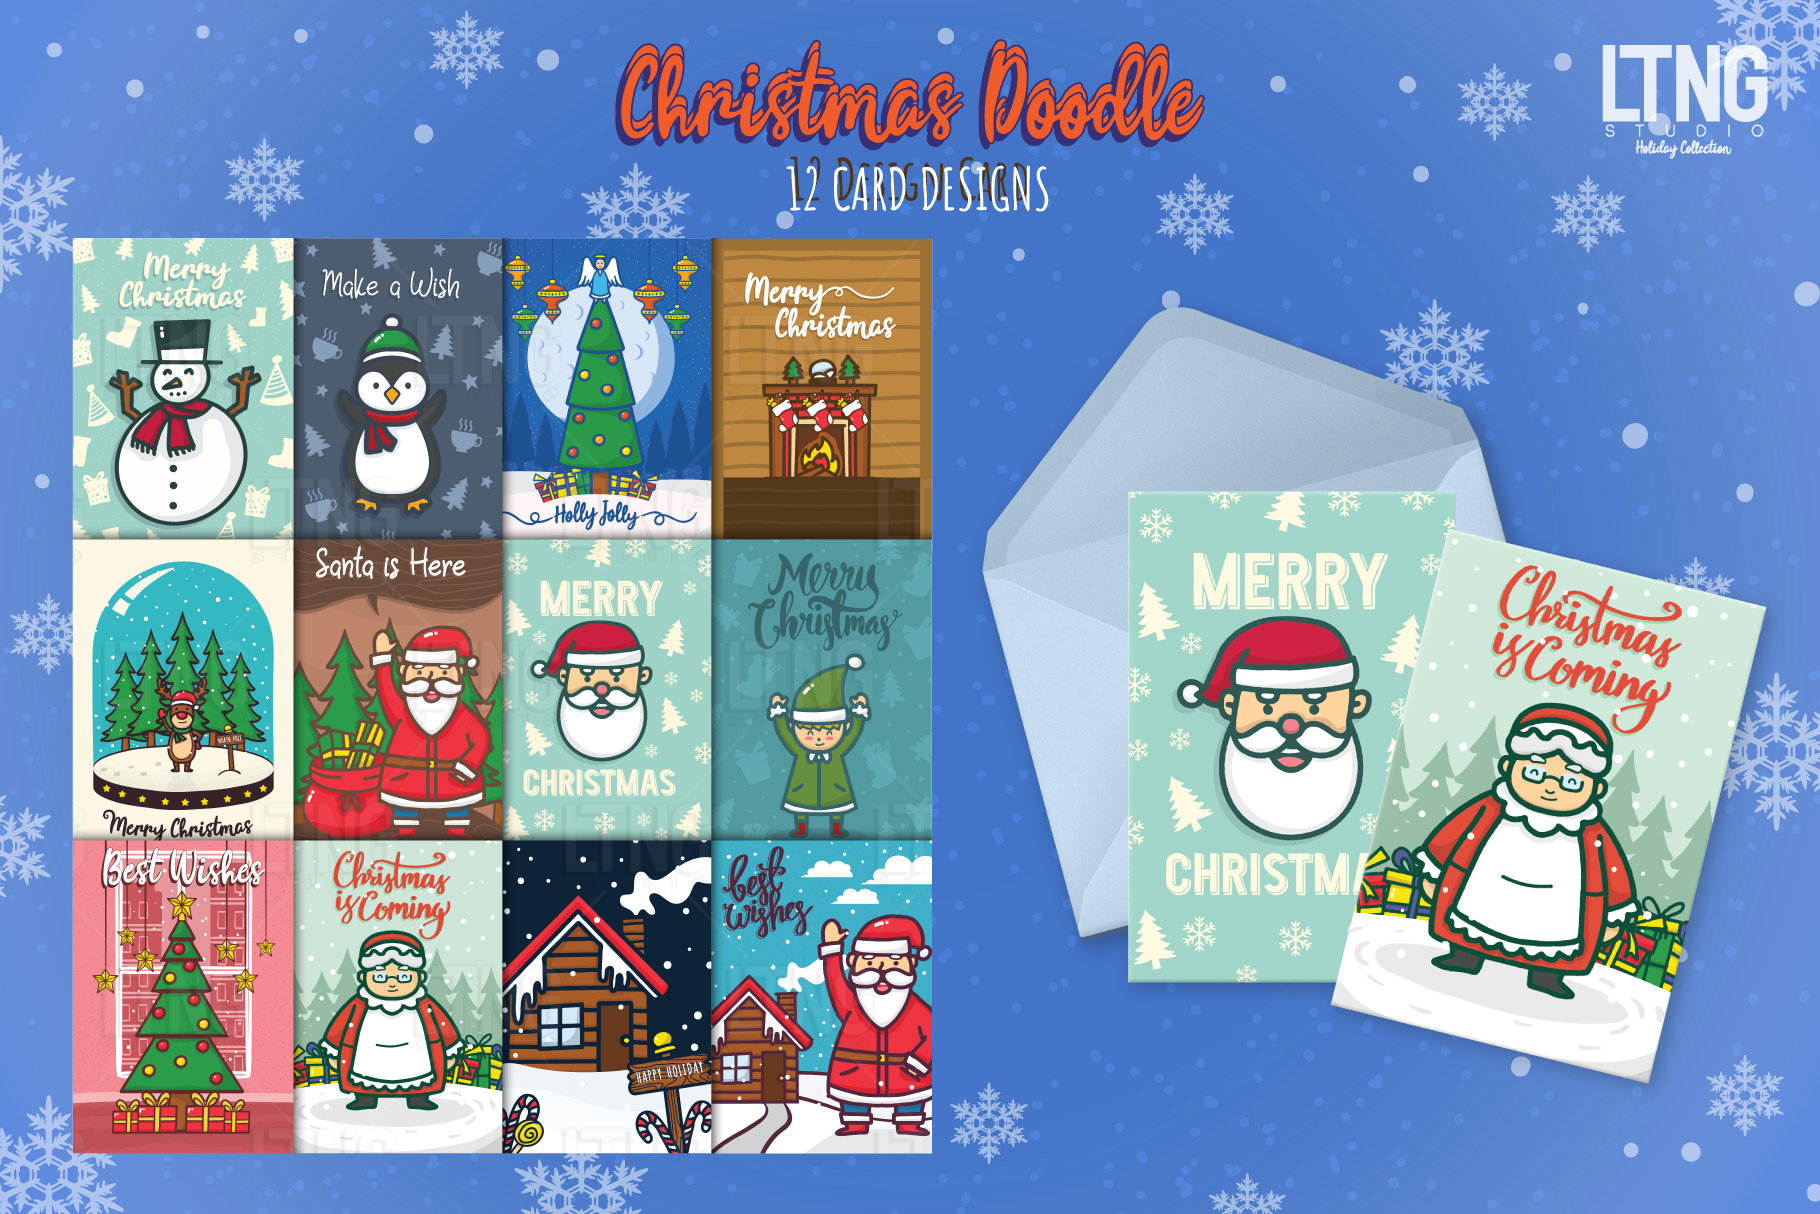 Christmas Doodle Graphic Element 2 example image 4